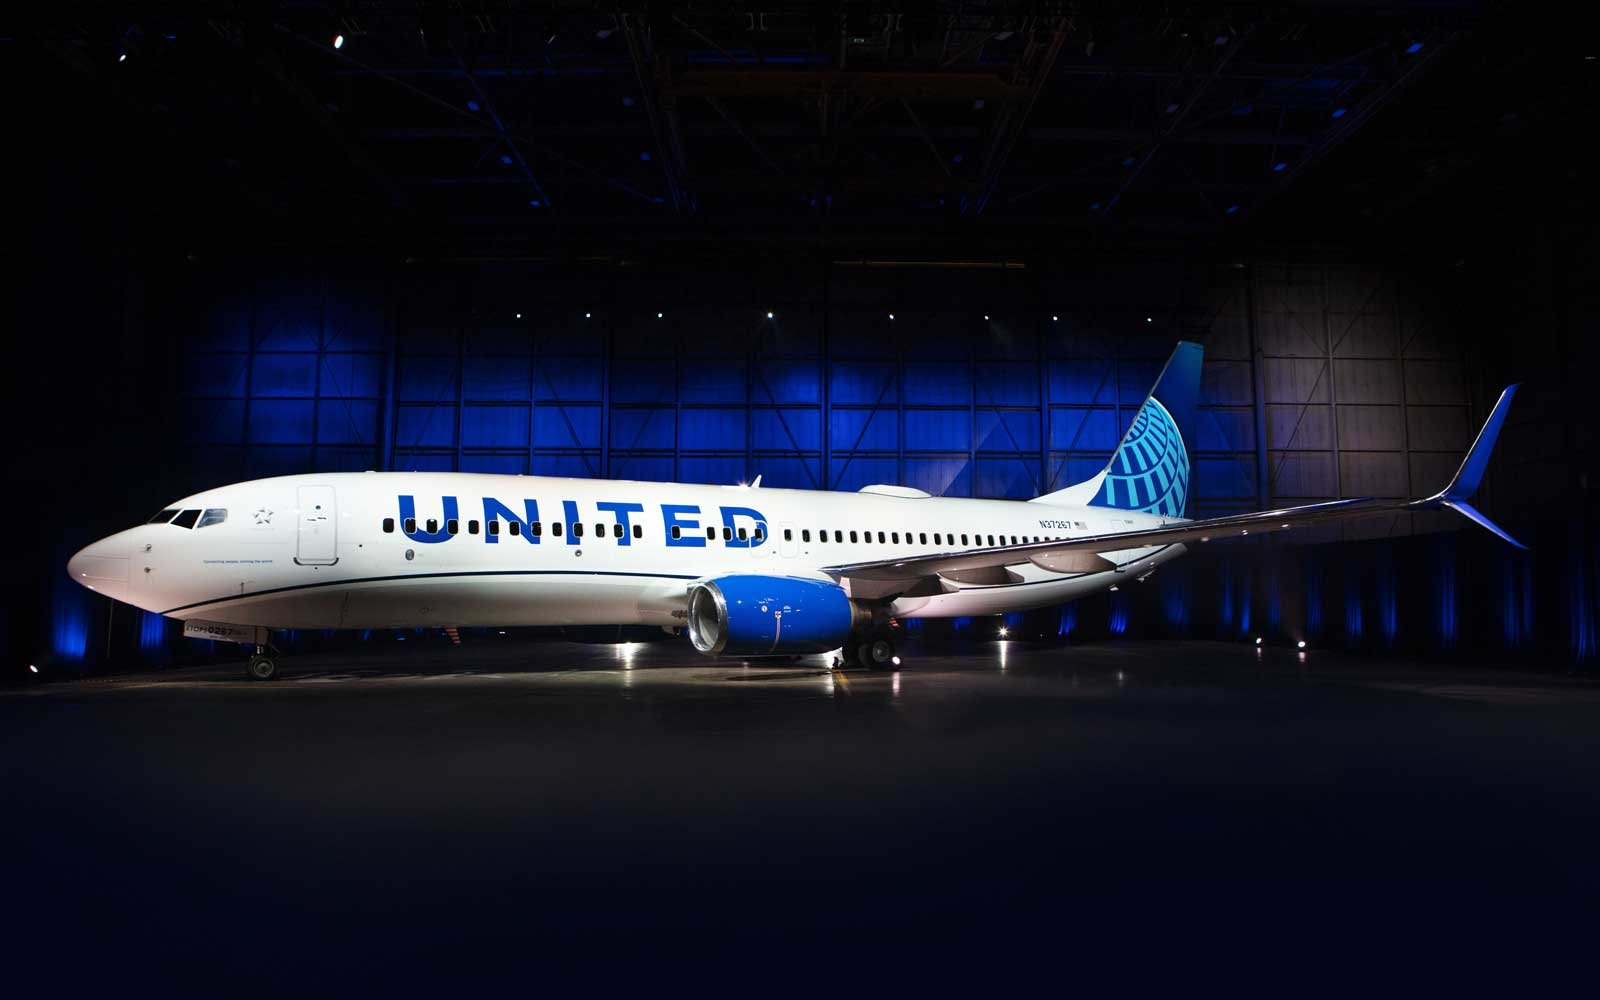 United Airlines Livery Changes